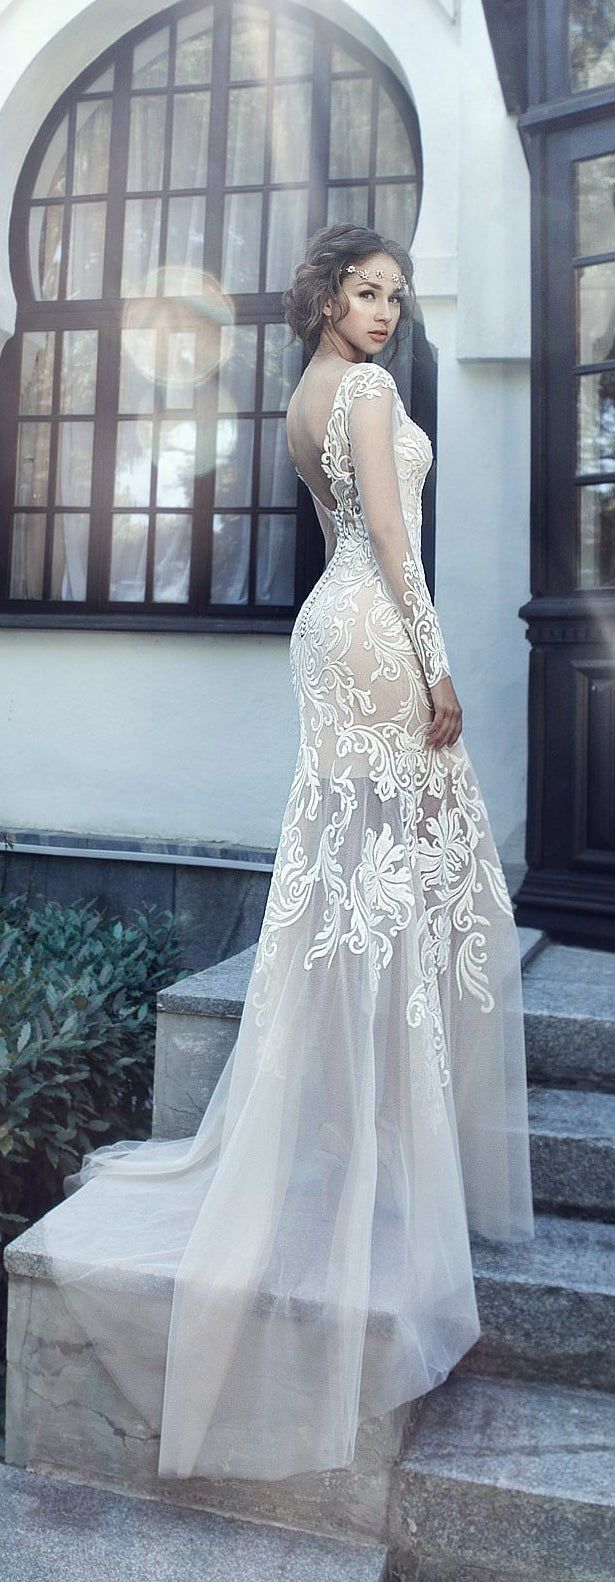 1133 best dresses images on Pinterest | Groom attire, Gown wedding ...